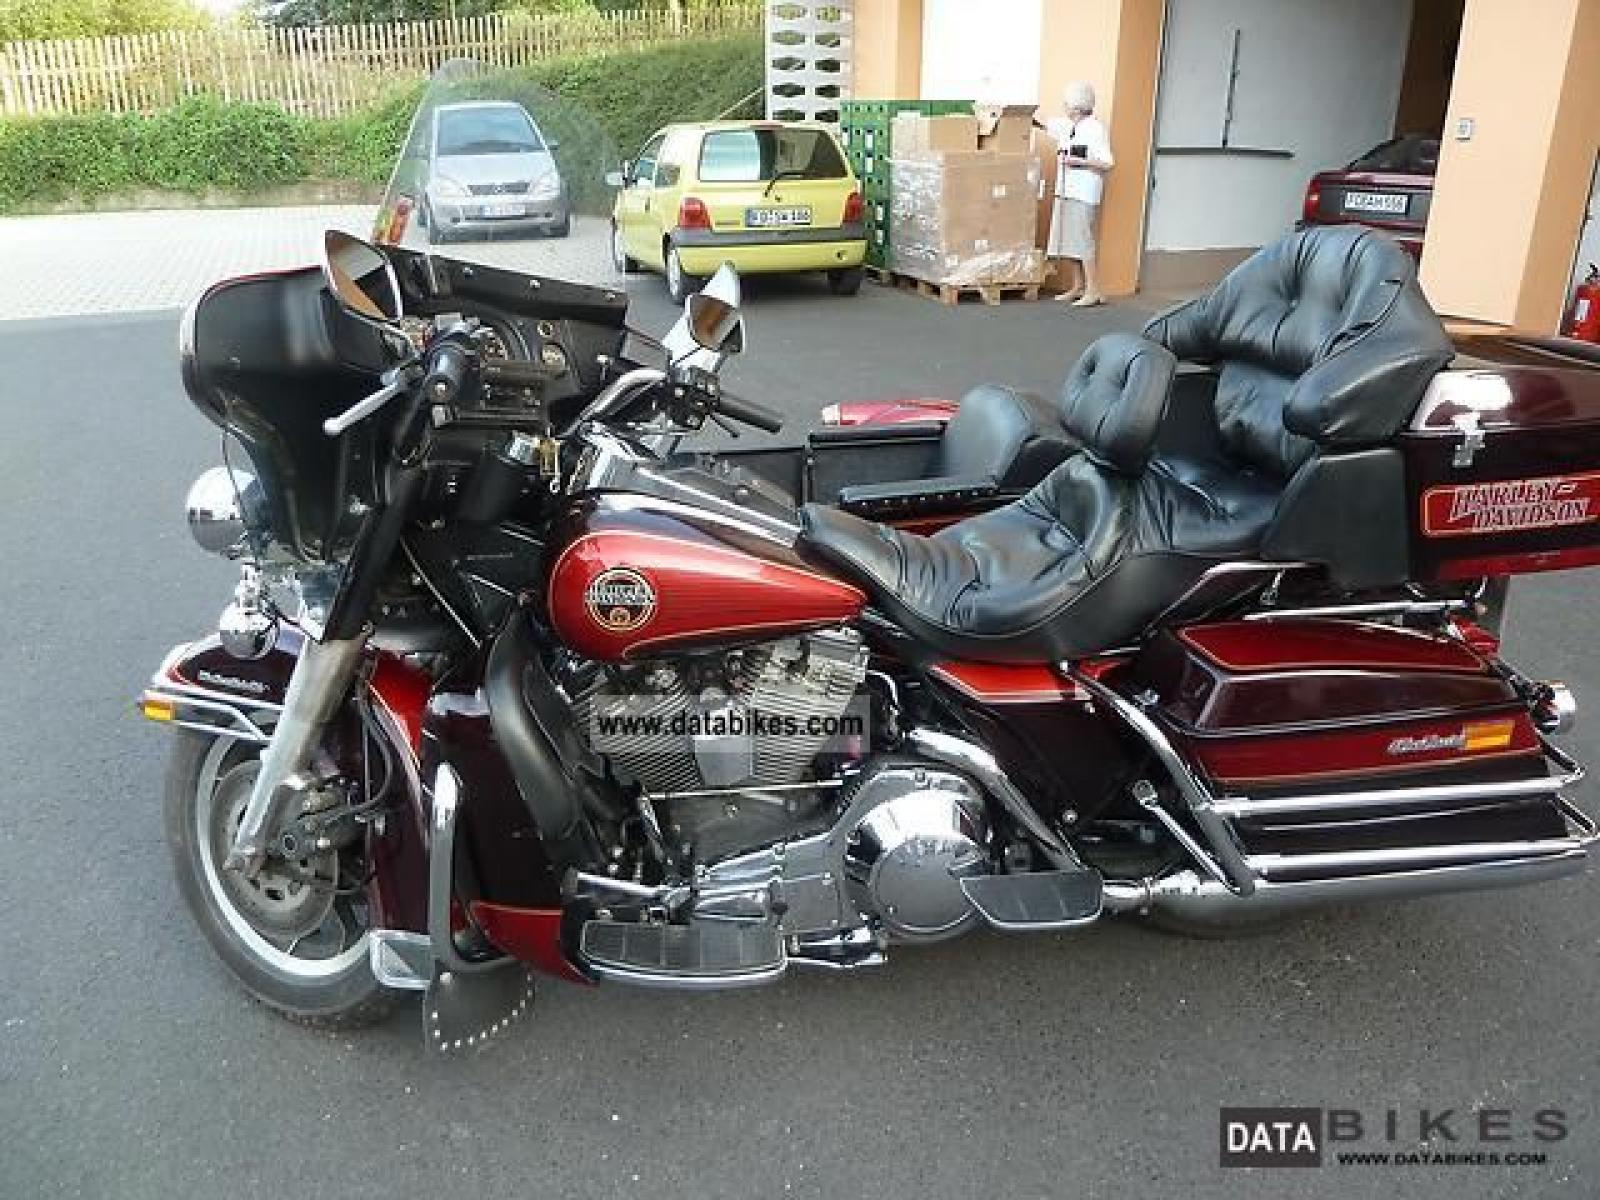 1995 Harley-Davidson 1340 Electra Glide Ultra Classic #2